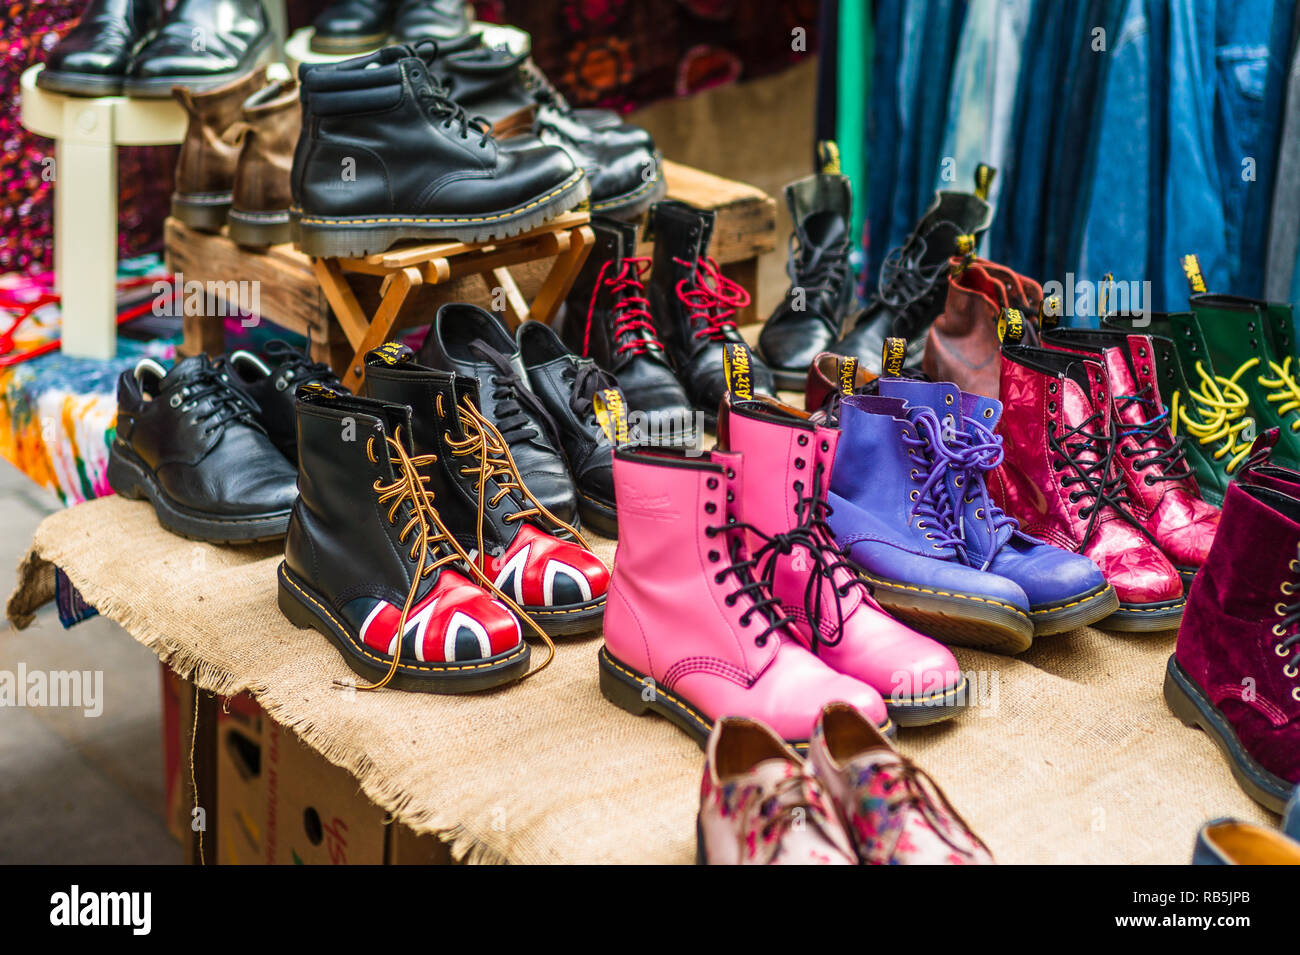 Vintage Footwear - Vintage Dr Martens boots for sale in Brick Lane Sunday Market in Shoreditch East London - Stock Image